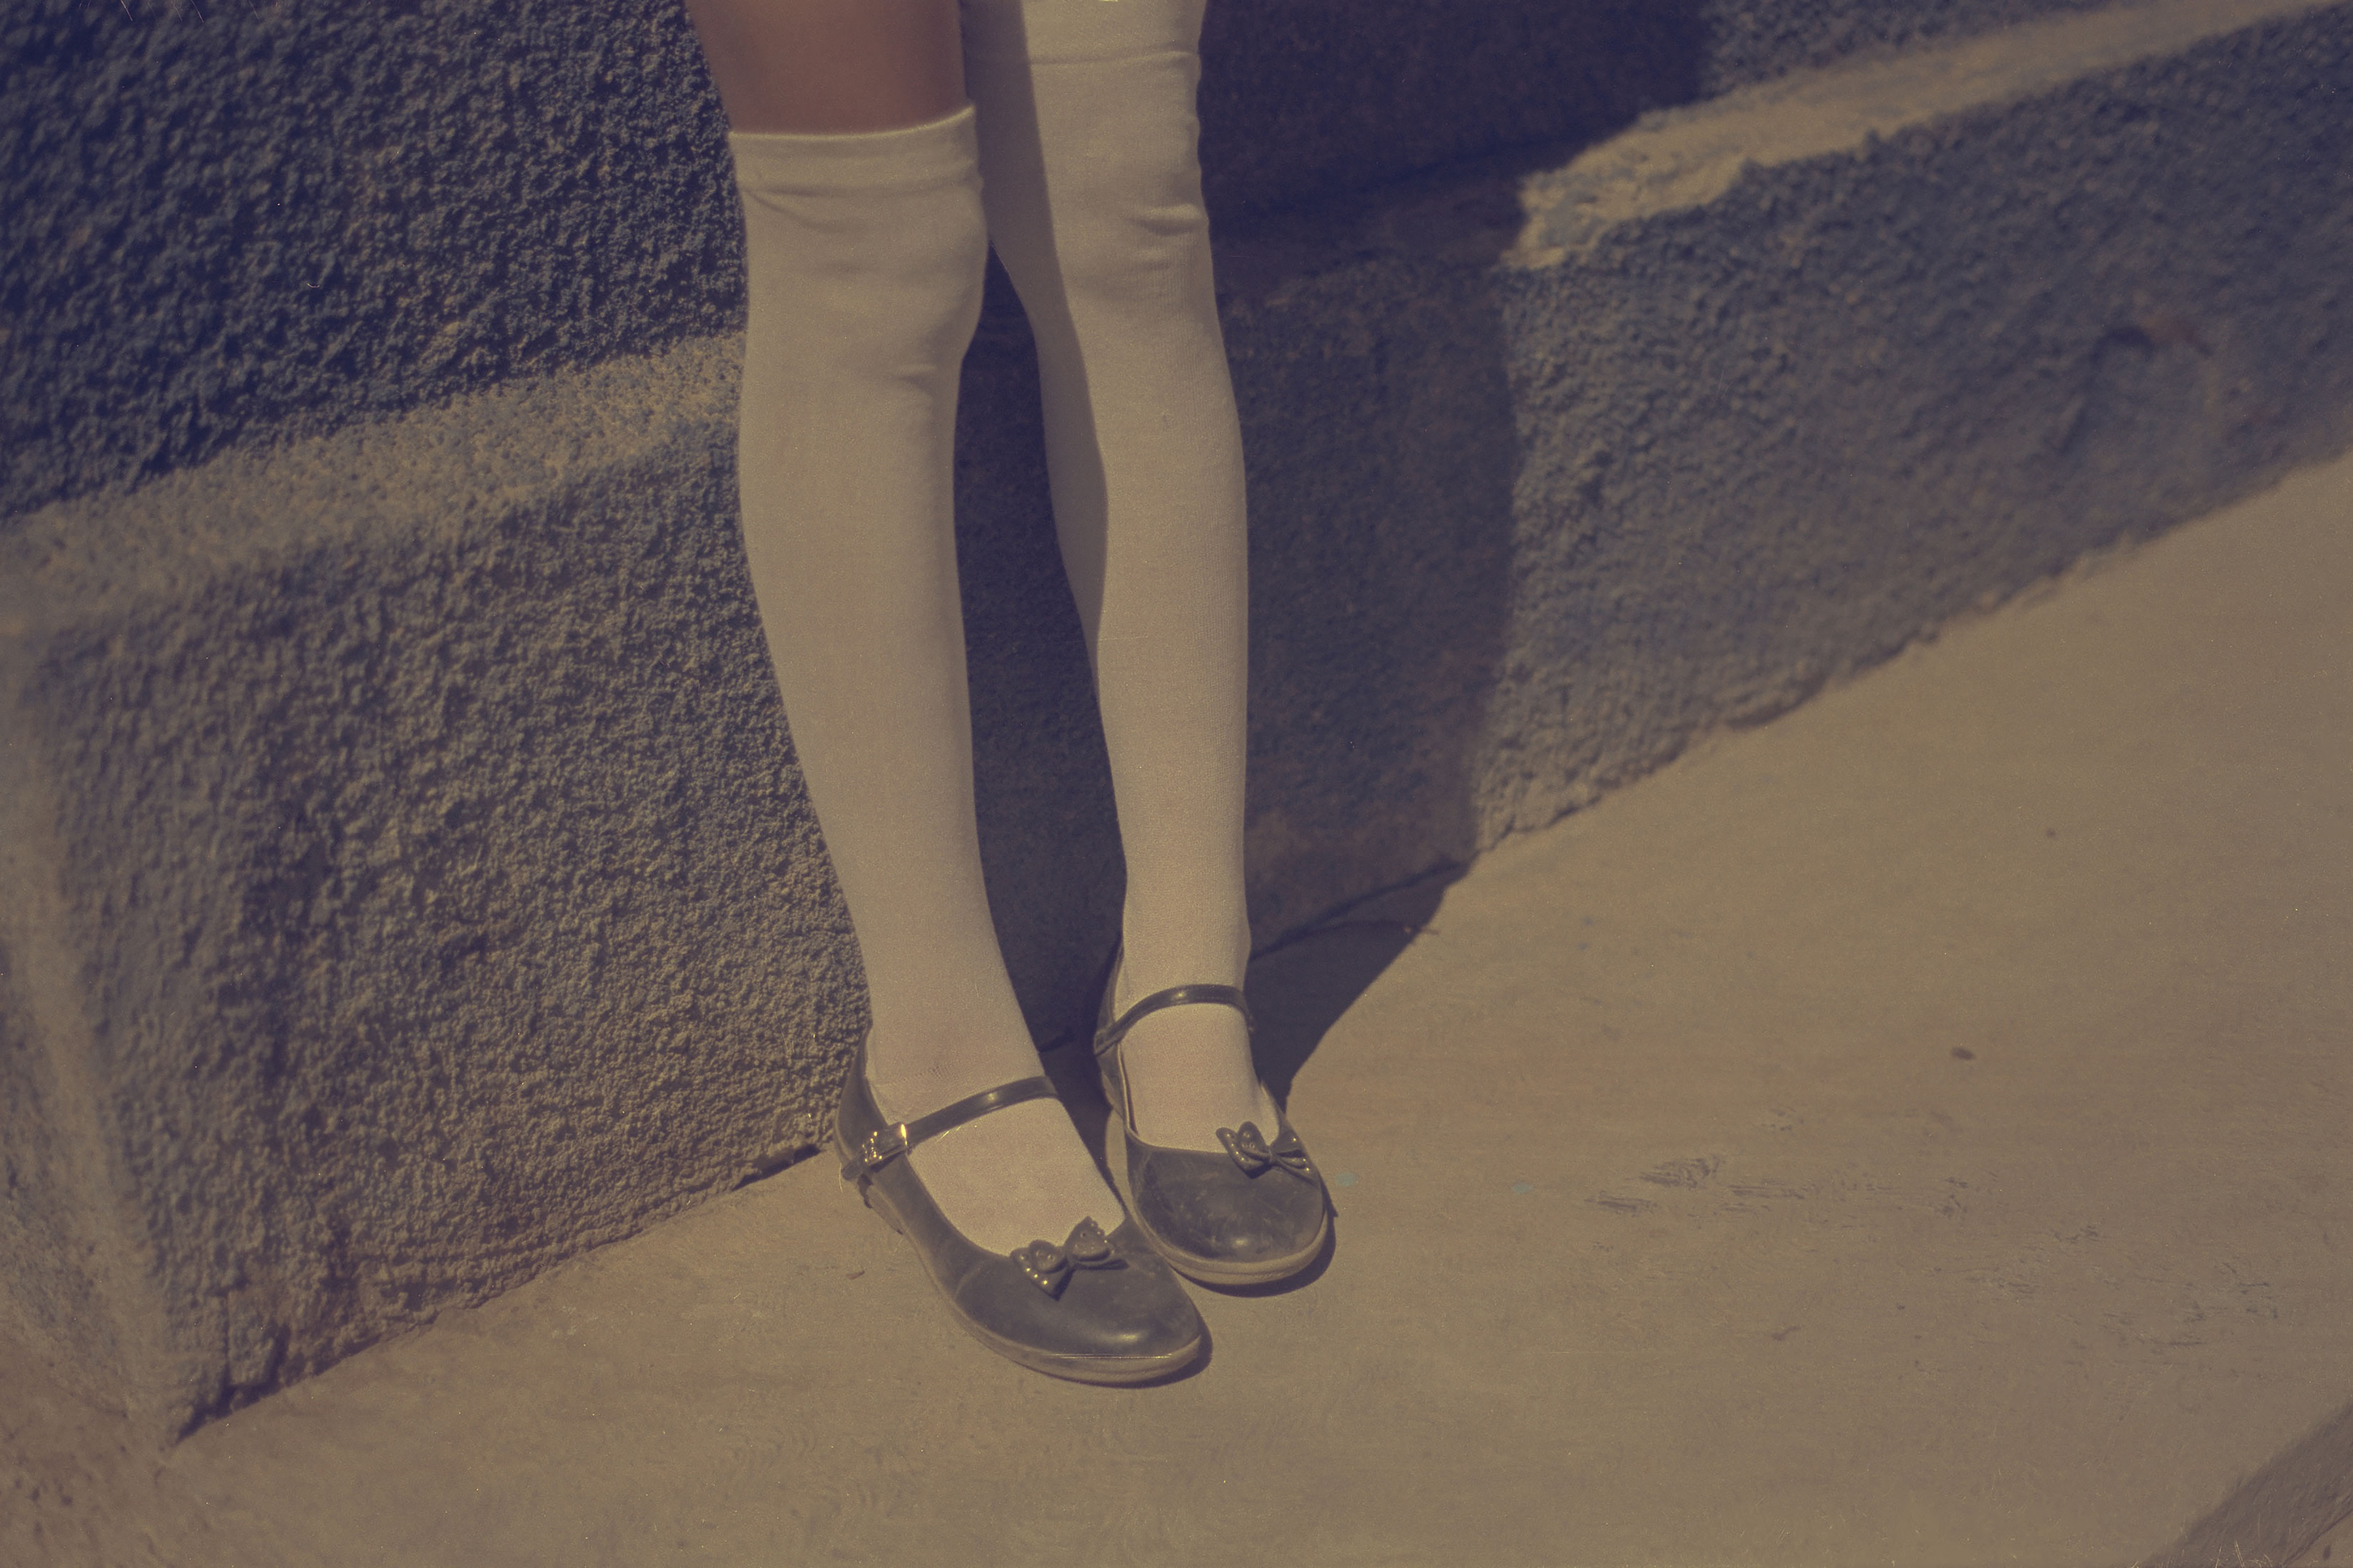 In Mexico, it is mandatory to wear school uniforms. The girls wear white long socks and the boys long pants, regardless of the hot temperature.